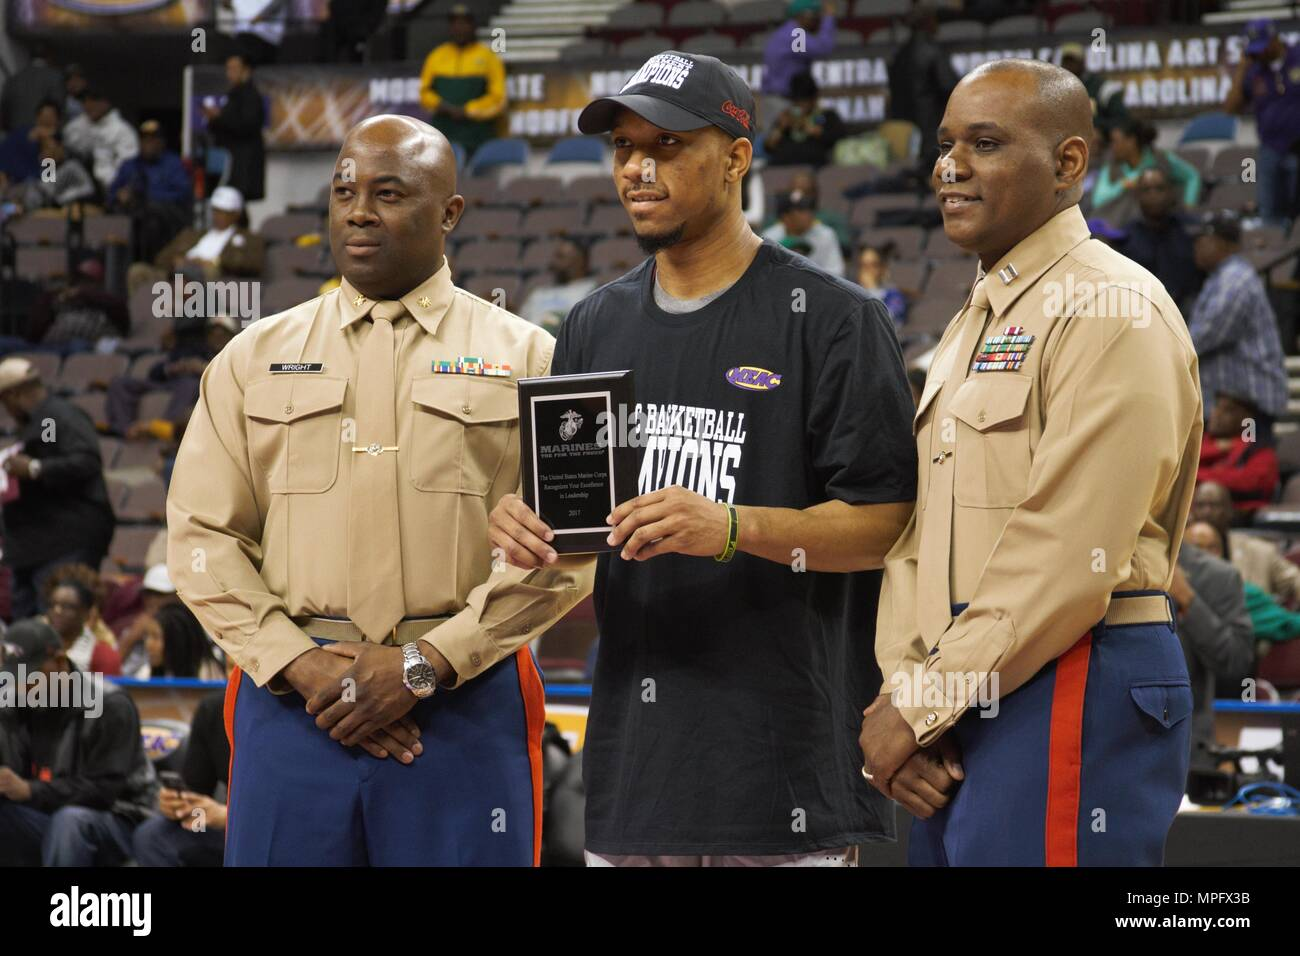 Marines pose for a picture with Rashaun Madison of North Carolina Central University at the Scope Arena in Norfolk, Va., March 11, 2017. The Eagles won the MEAC tournament and earned an automatic bid into the NCAA tournament. The Marine Corps is proud to recognize and celebrate those young people who display the qualities of a leader through their commitment to hard work in school, as well as in their extracurricular activities. - Stock Image